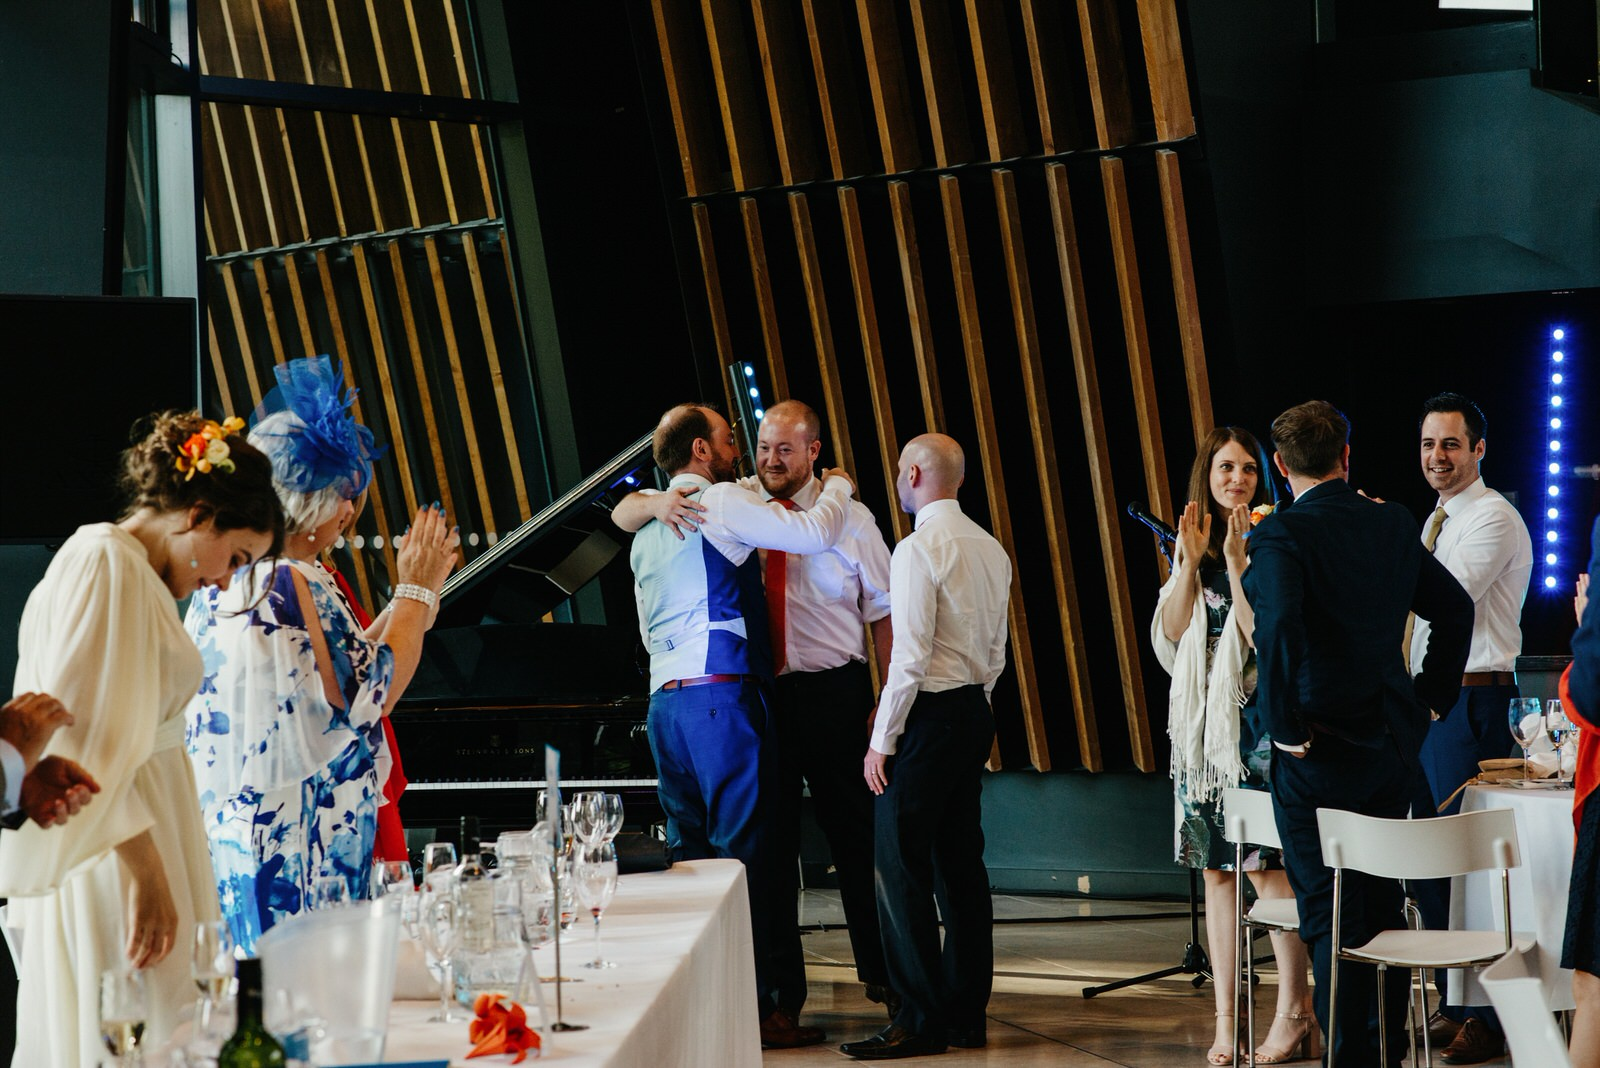 Groom thanking his groomsmen after the speeches at the Royal College of Music and Drama